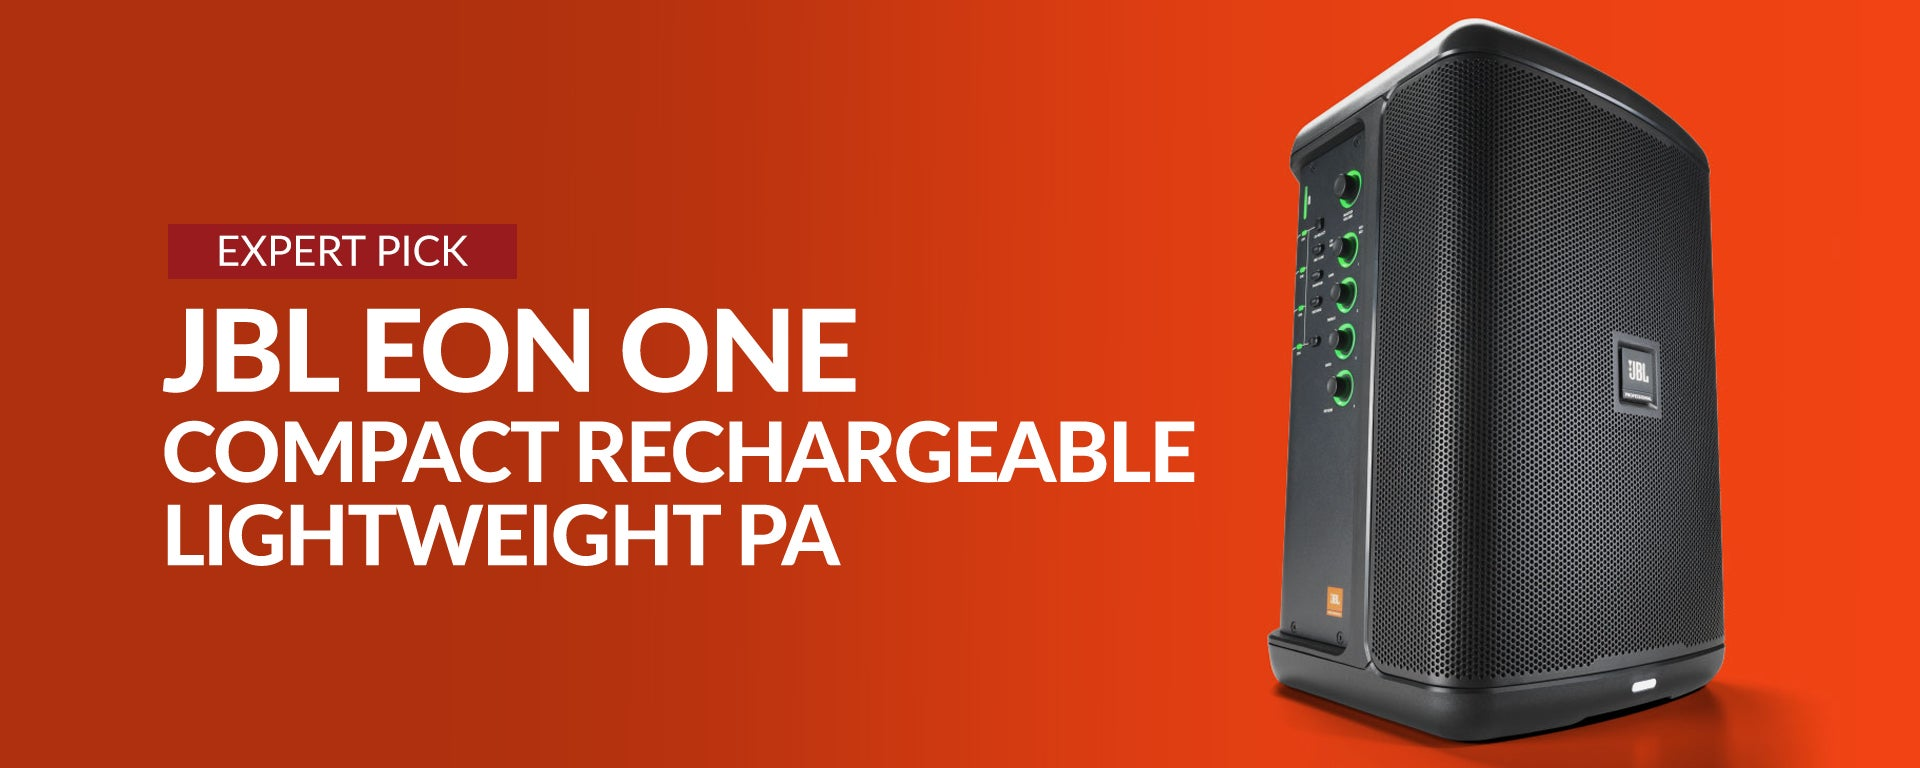 JBL: Eon One Compact Rechargeable Lightweight PA